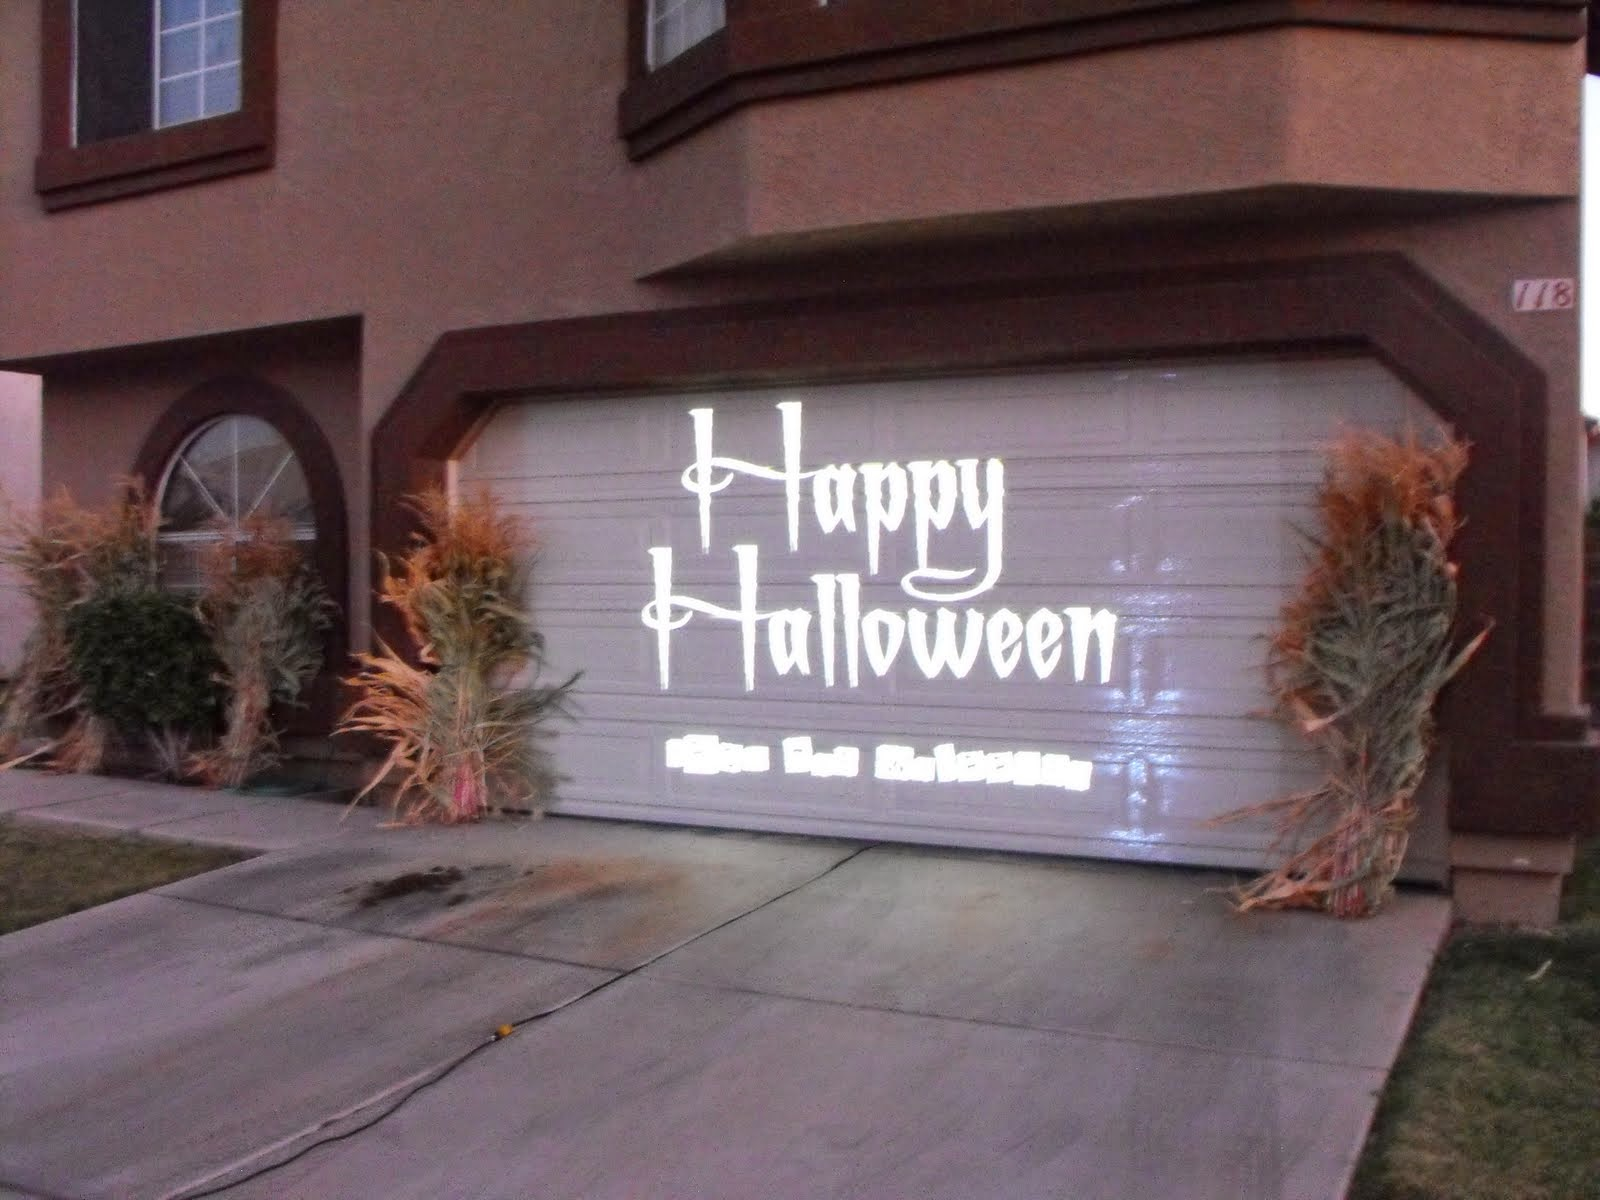 15 best Holiday Doors images on Pinterest Garage doors, Carriage - Halloween Garage Door Decorations